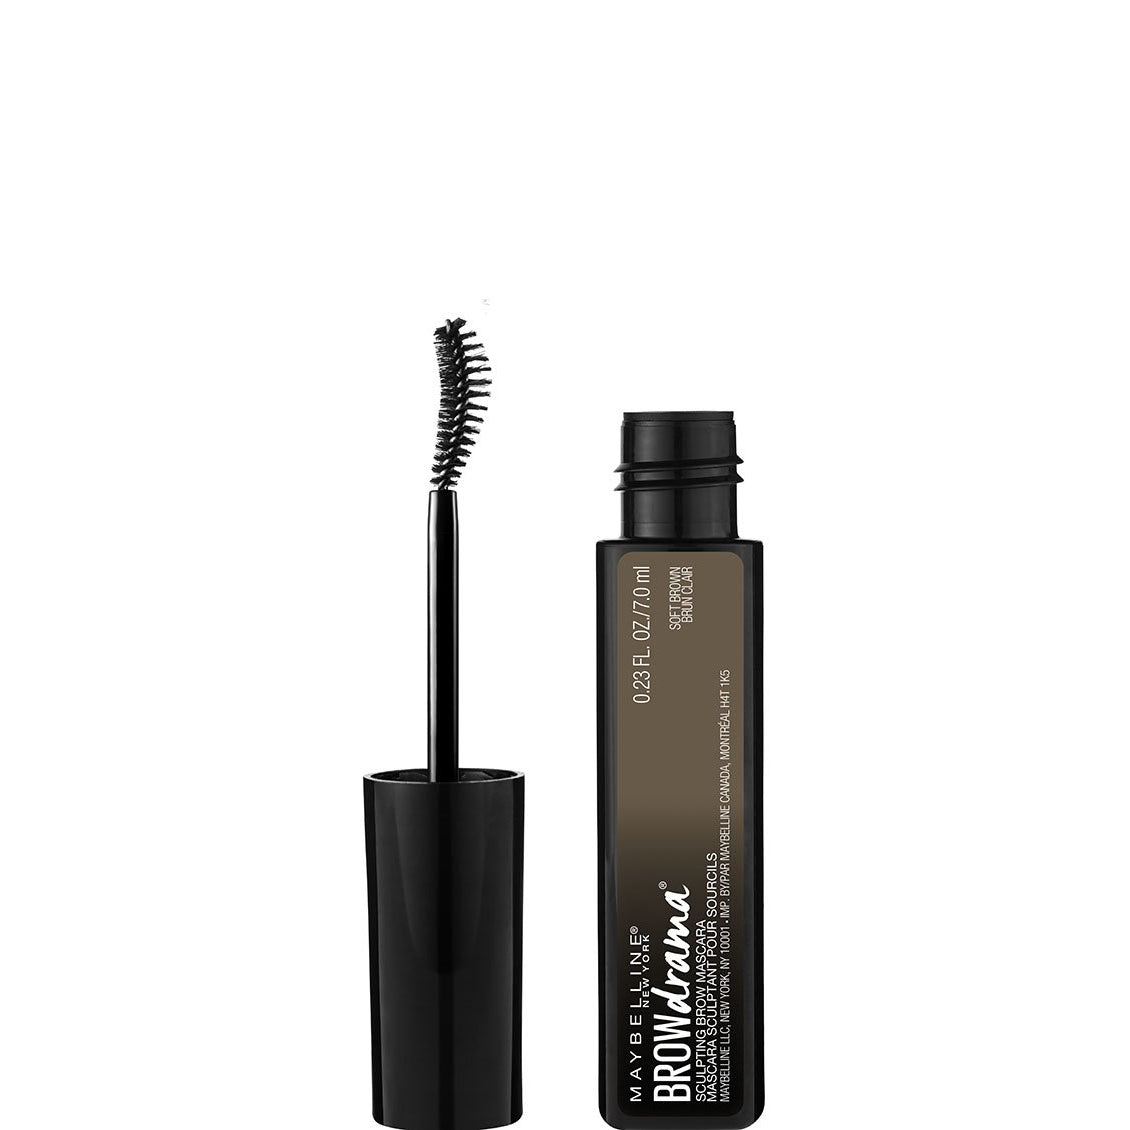 Maybelline Brow Drama Sculpting Eyebrow Mascara